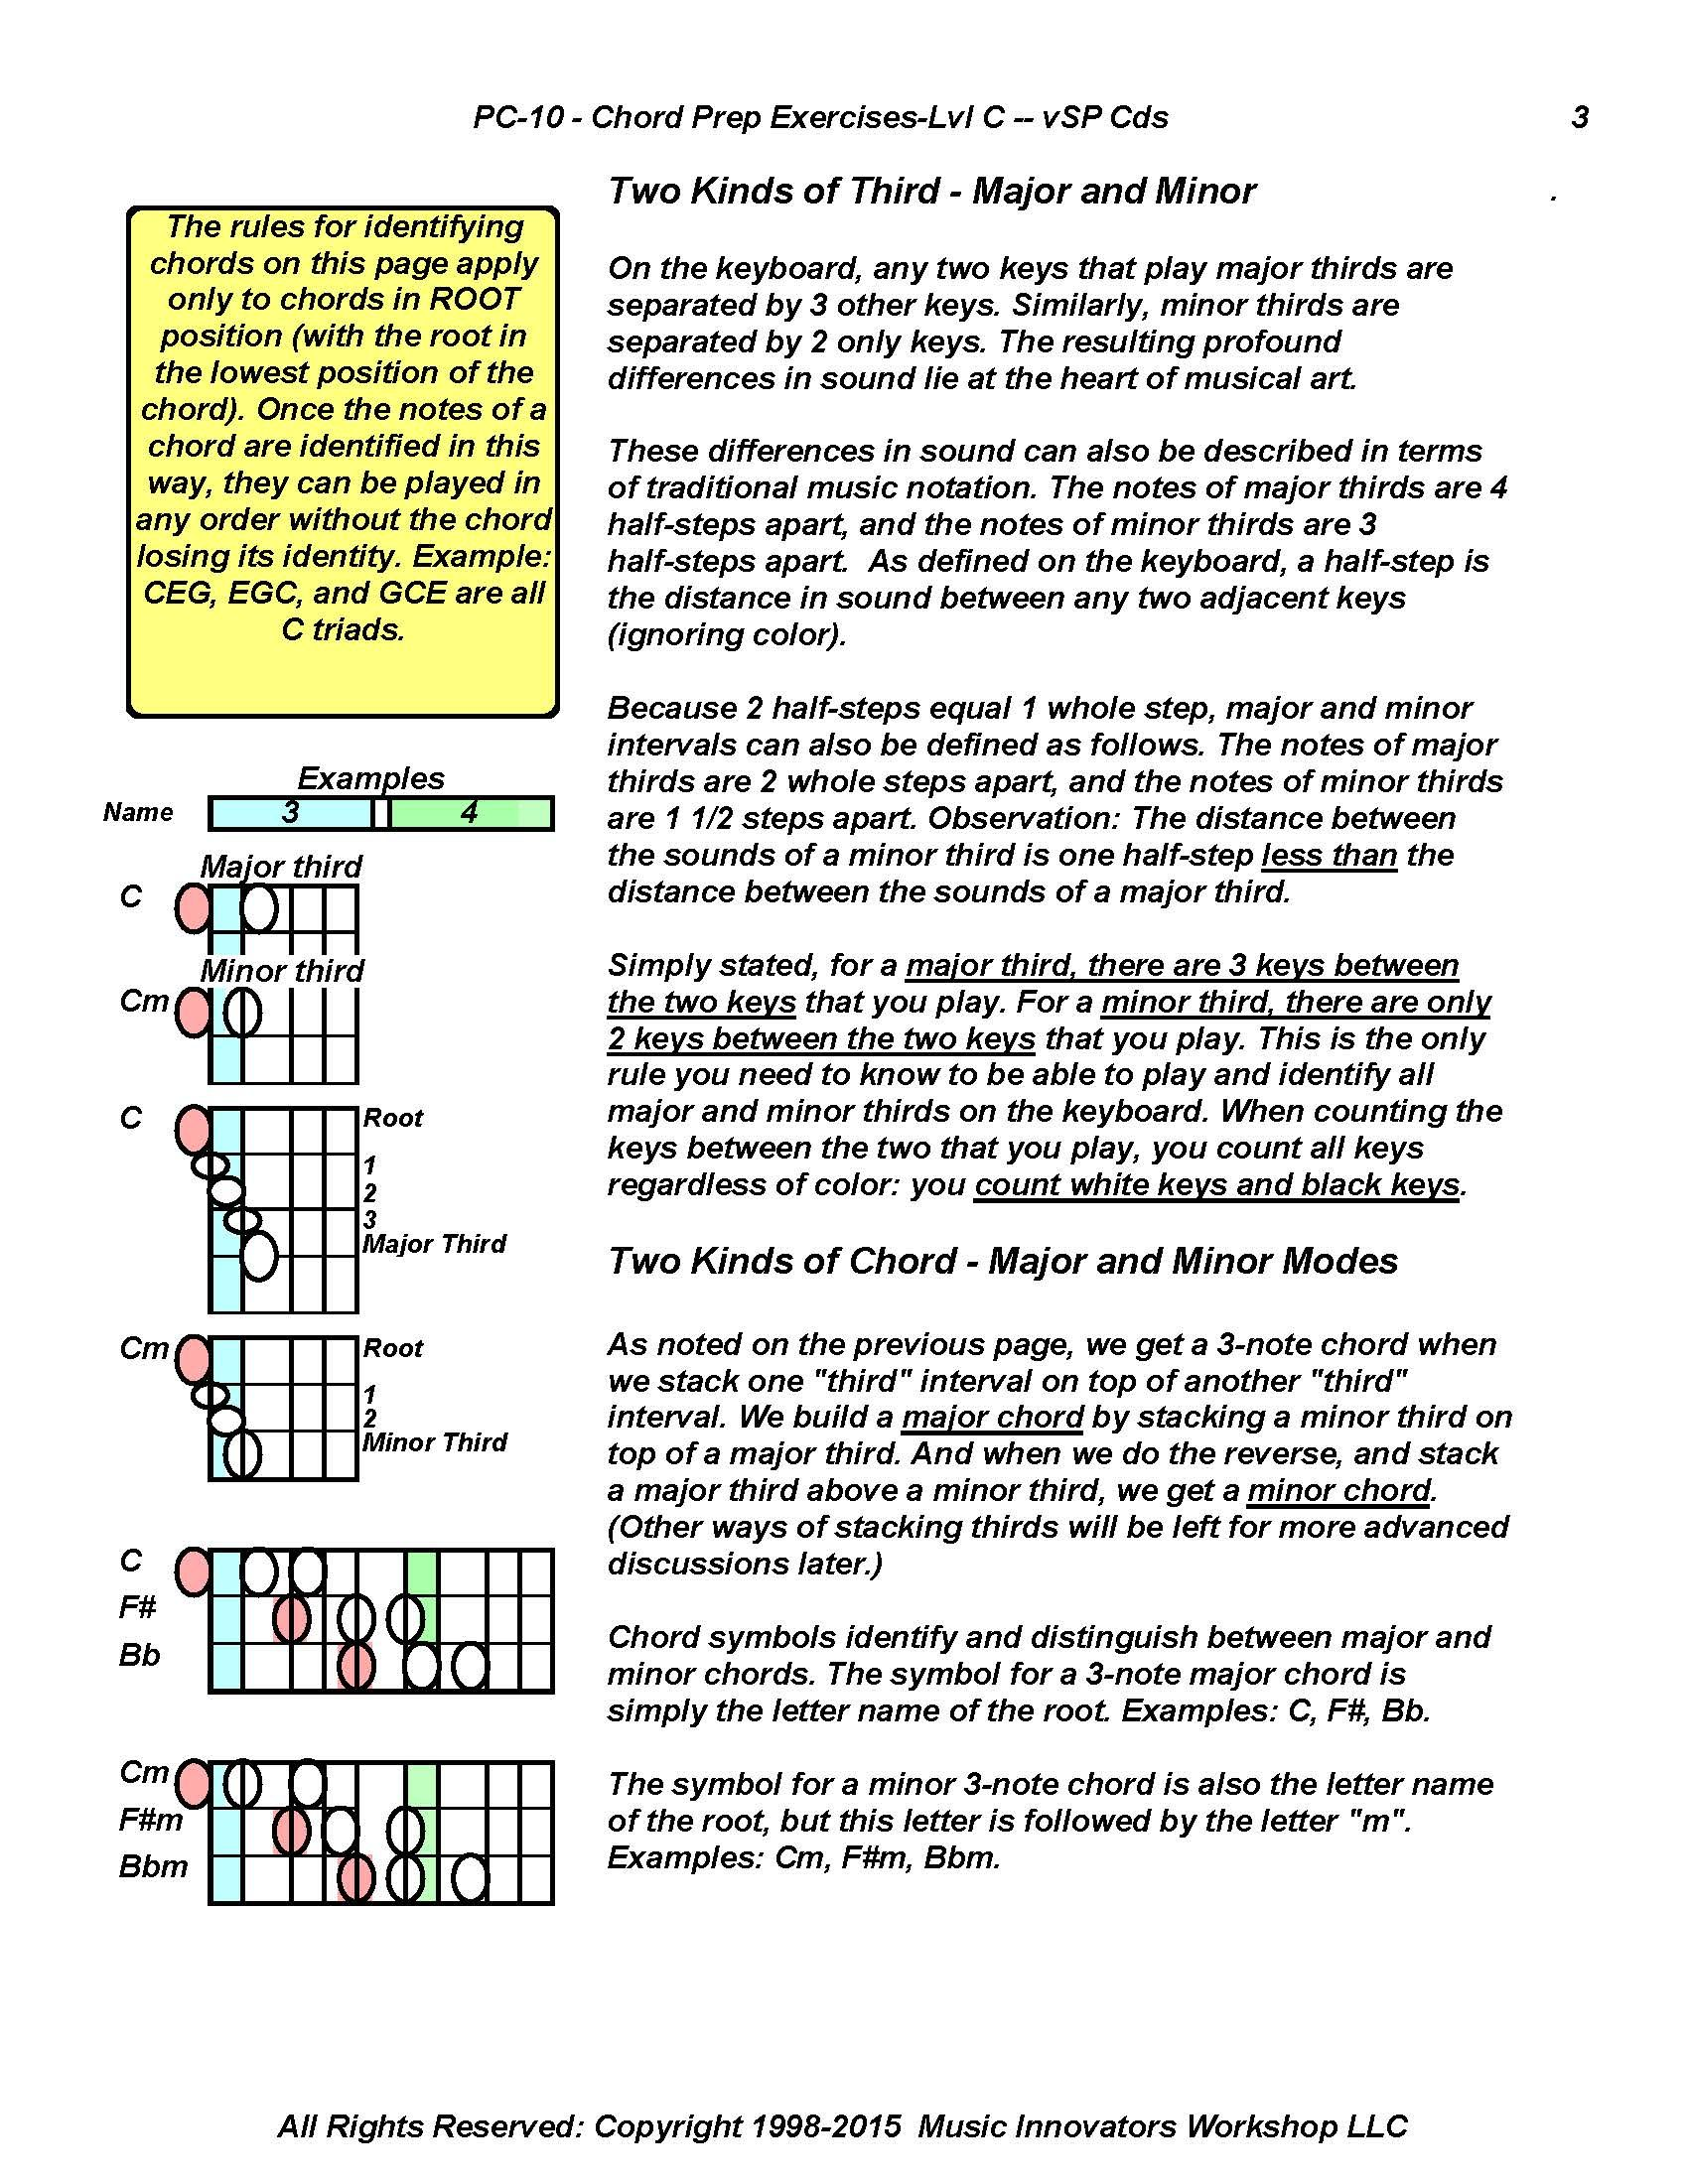 About Chords 2 Chord Prep With Exercises Pinterest Exercises